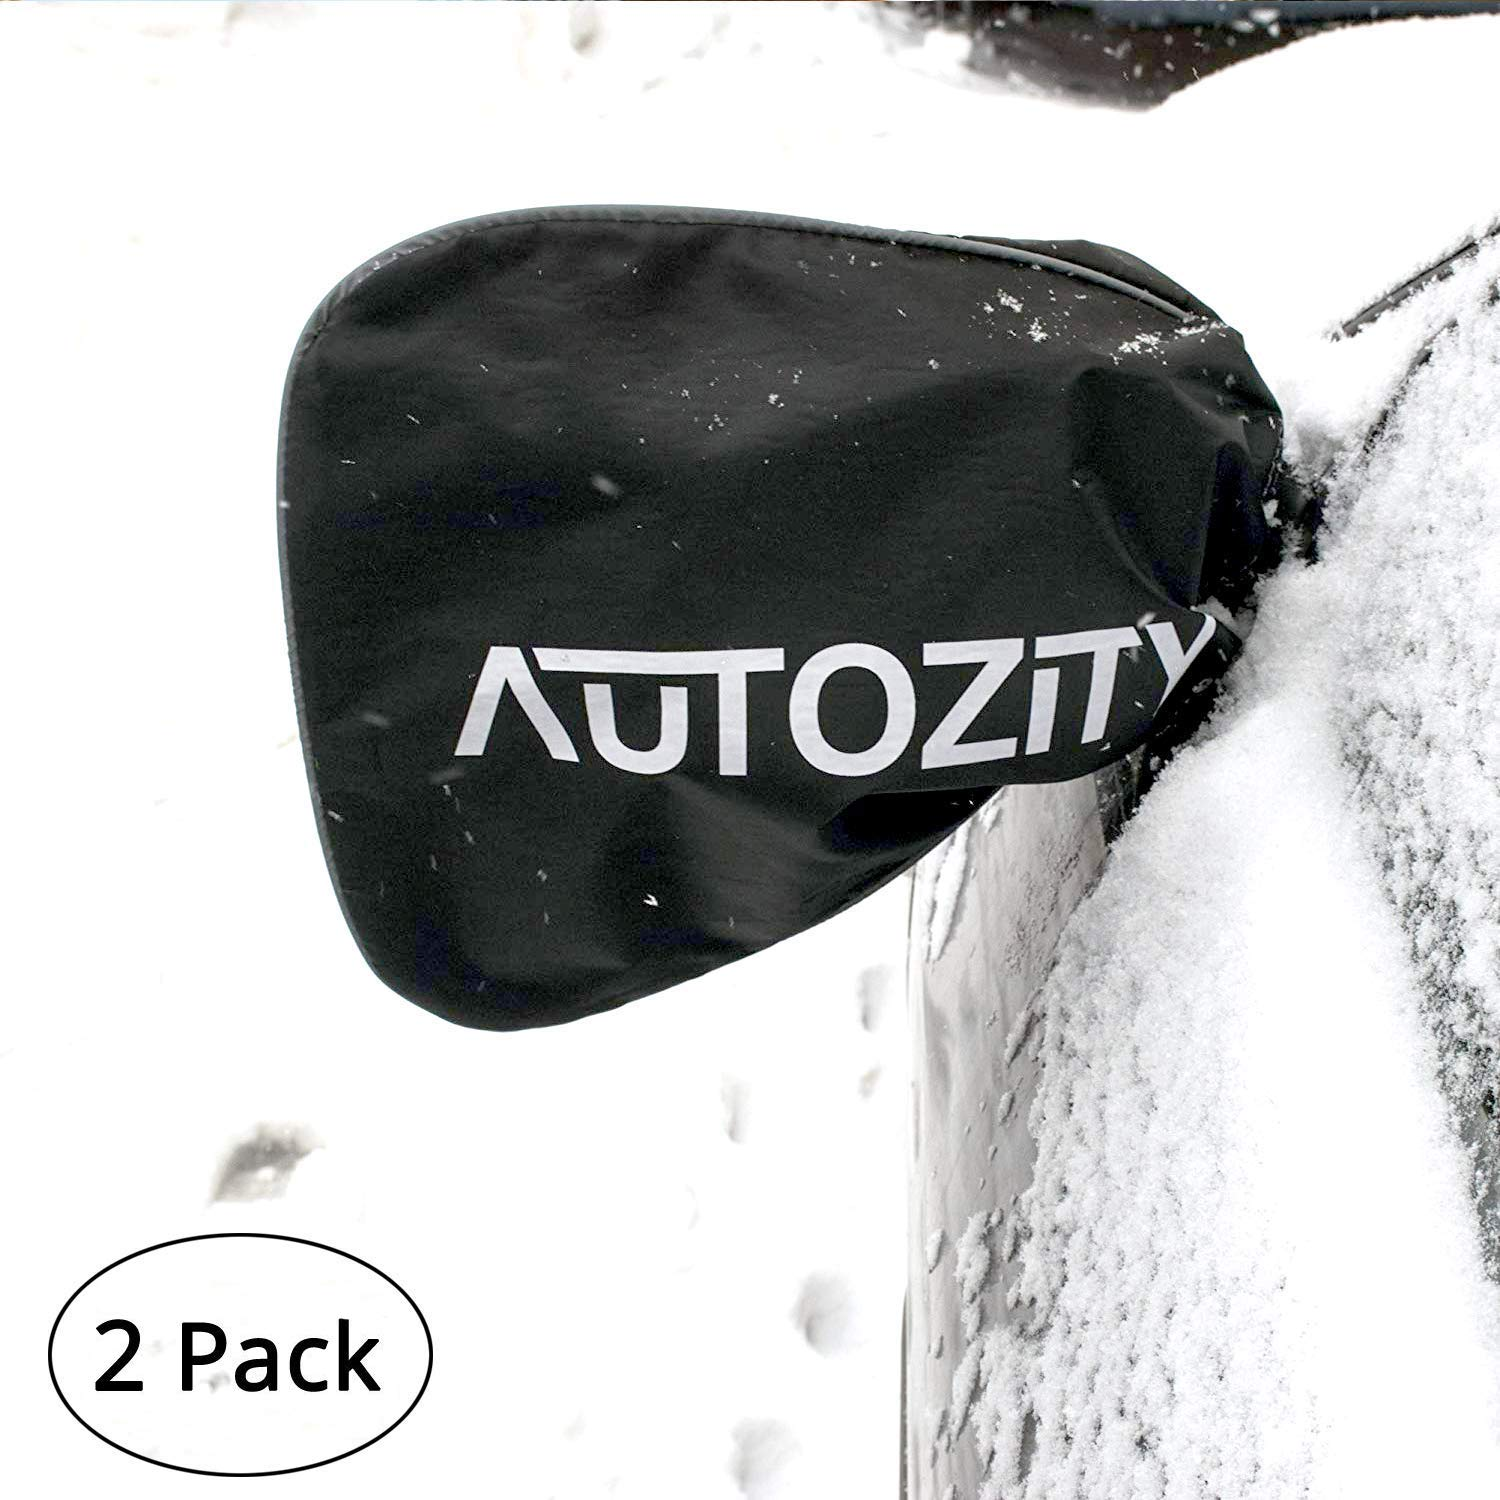 Car Side Mirror Snow Covers Set, Car Mirror Covers Protect Auto Exterior Rear View Mirrors from Snow, Ice & Frost, Reflective Print and Margin with Anti Theft Mechanism PlanToys